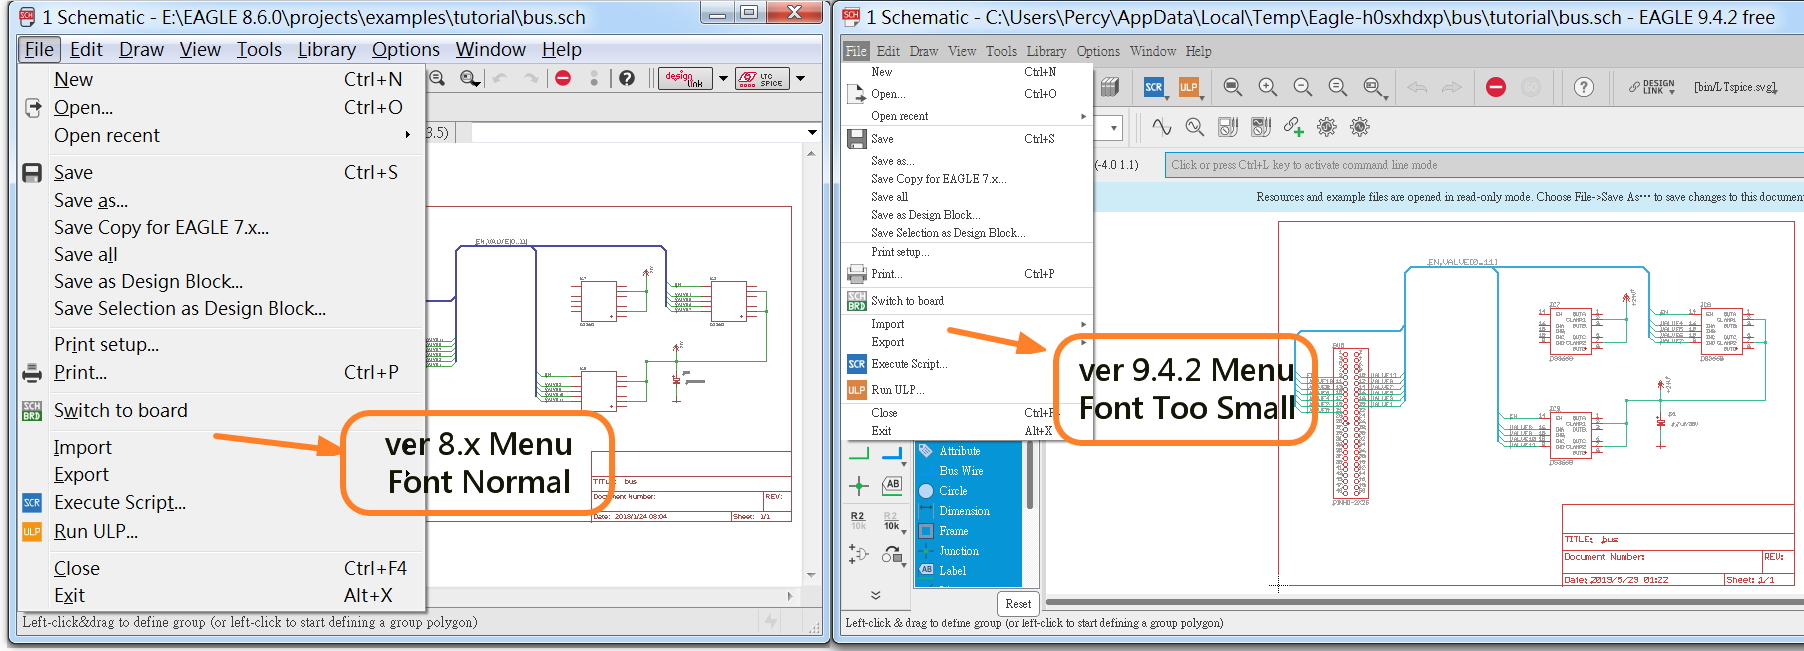 Menu Font is too samll to see ? - Autodesk Community- EAGLE